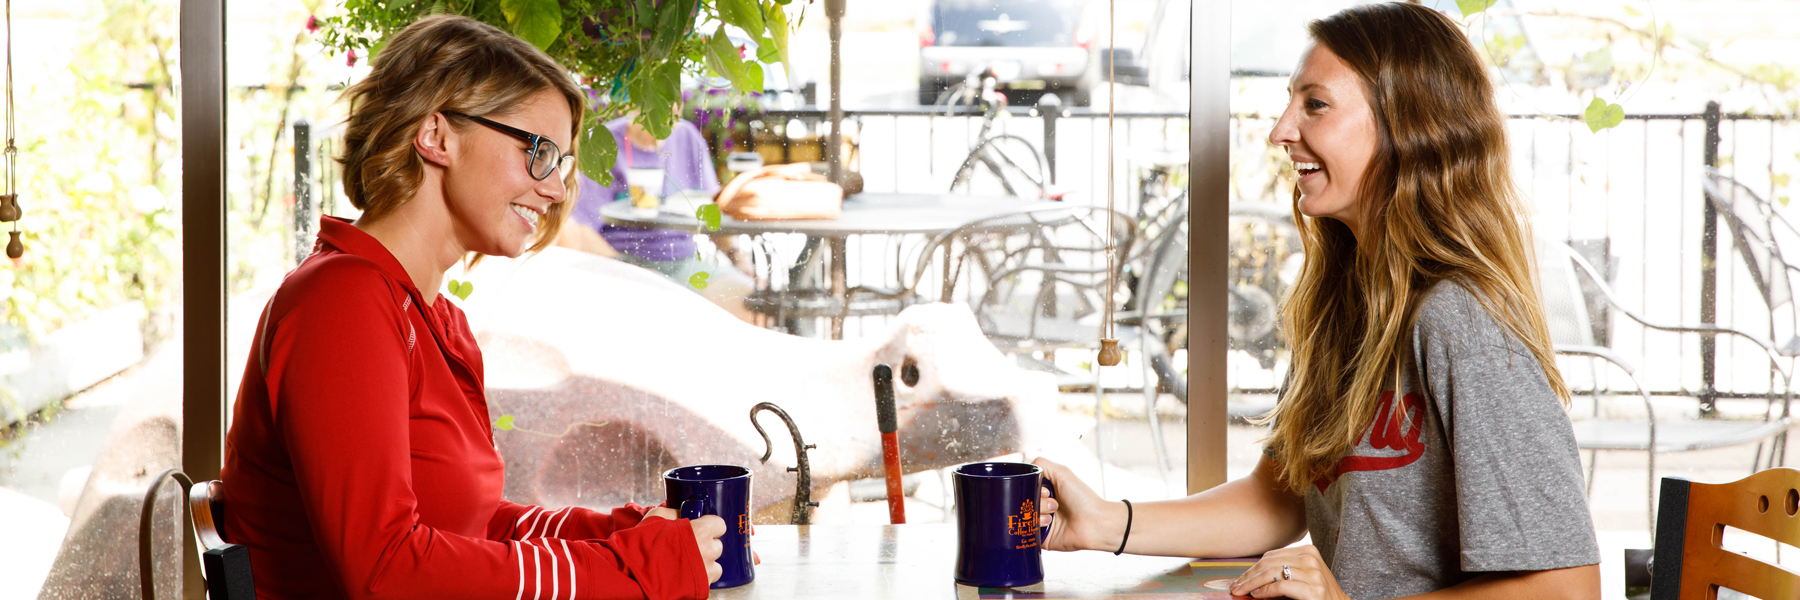 Two students smile and talk over mugs of coffee in a coffee shop.